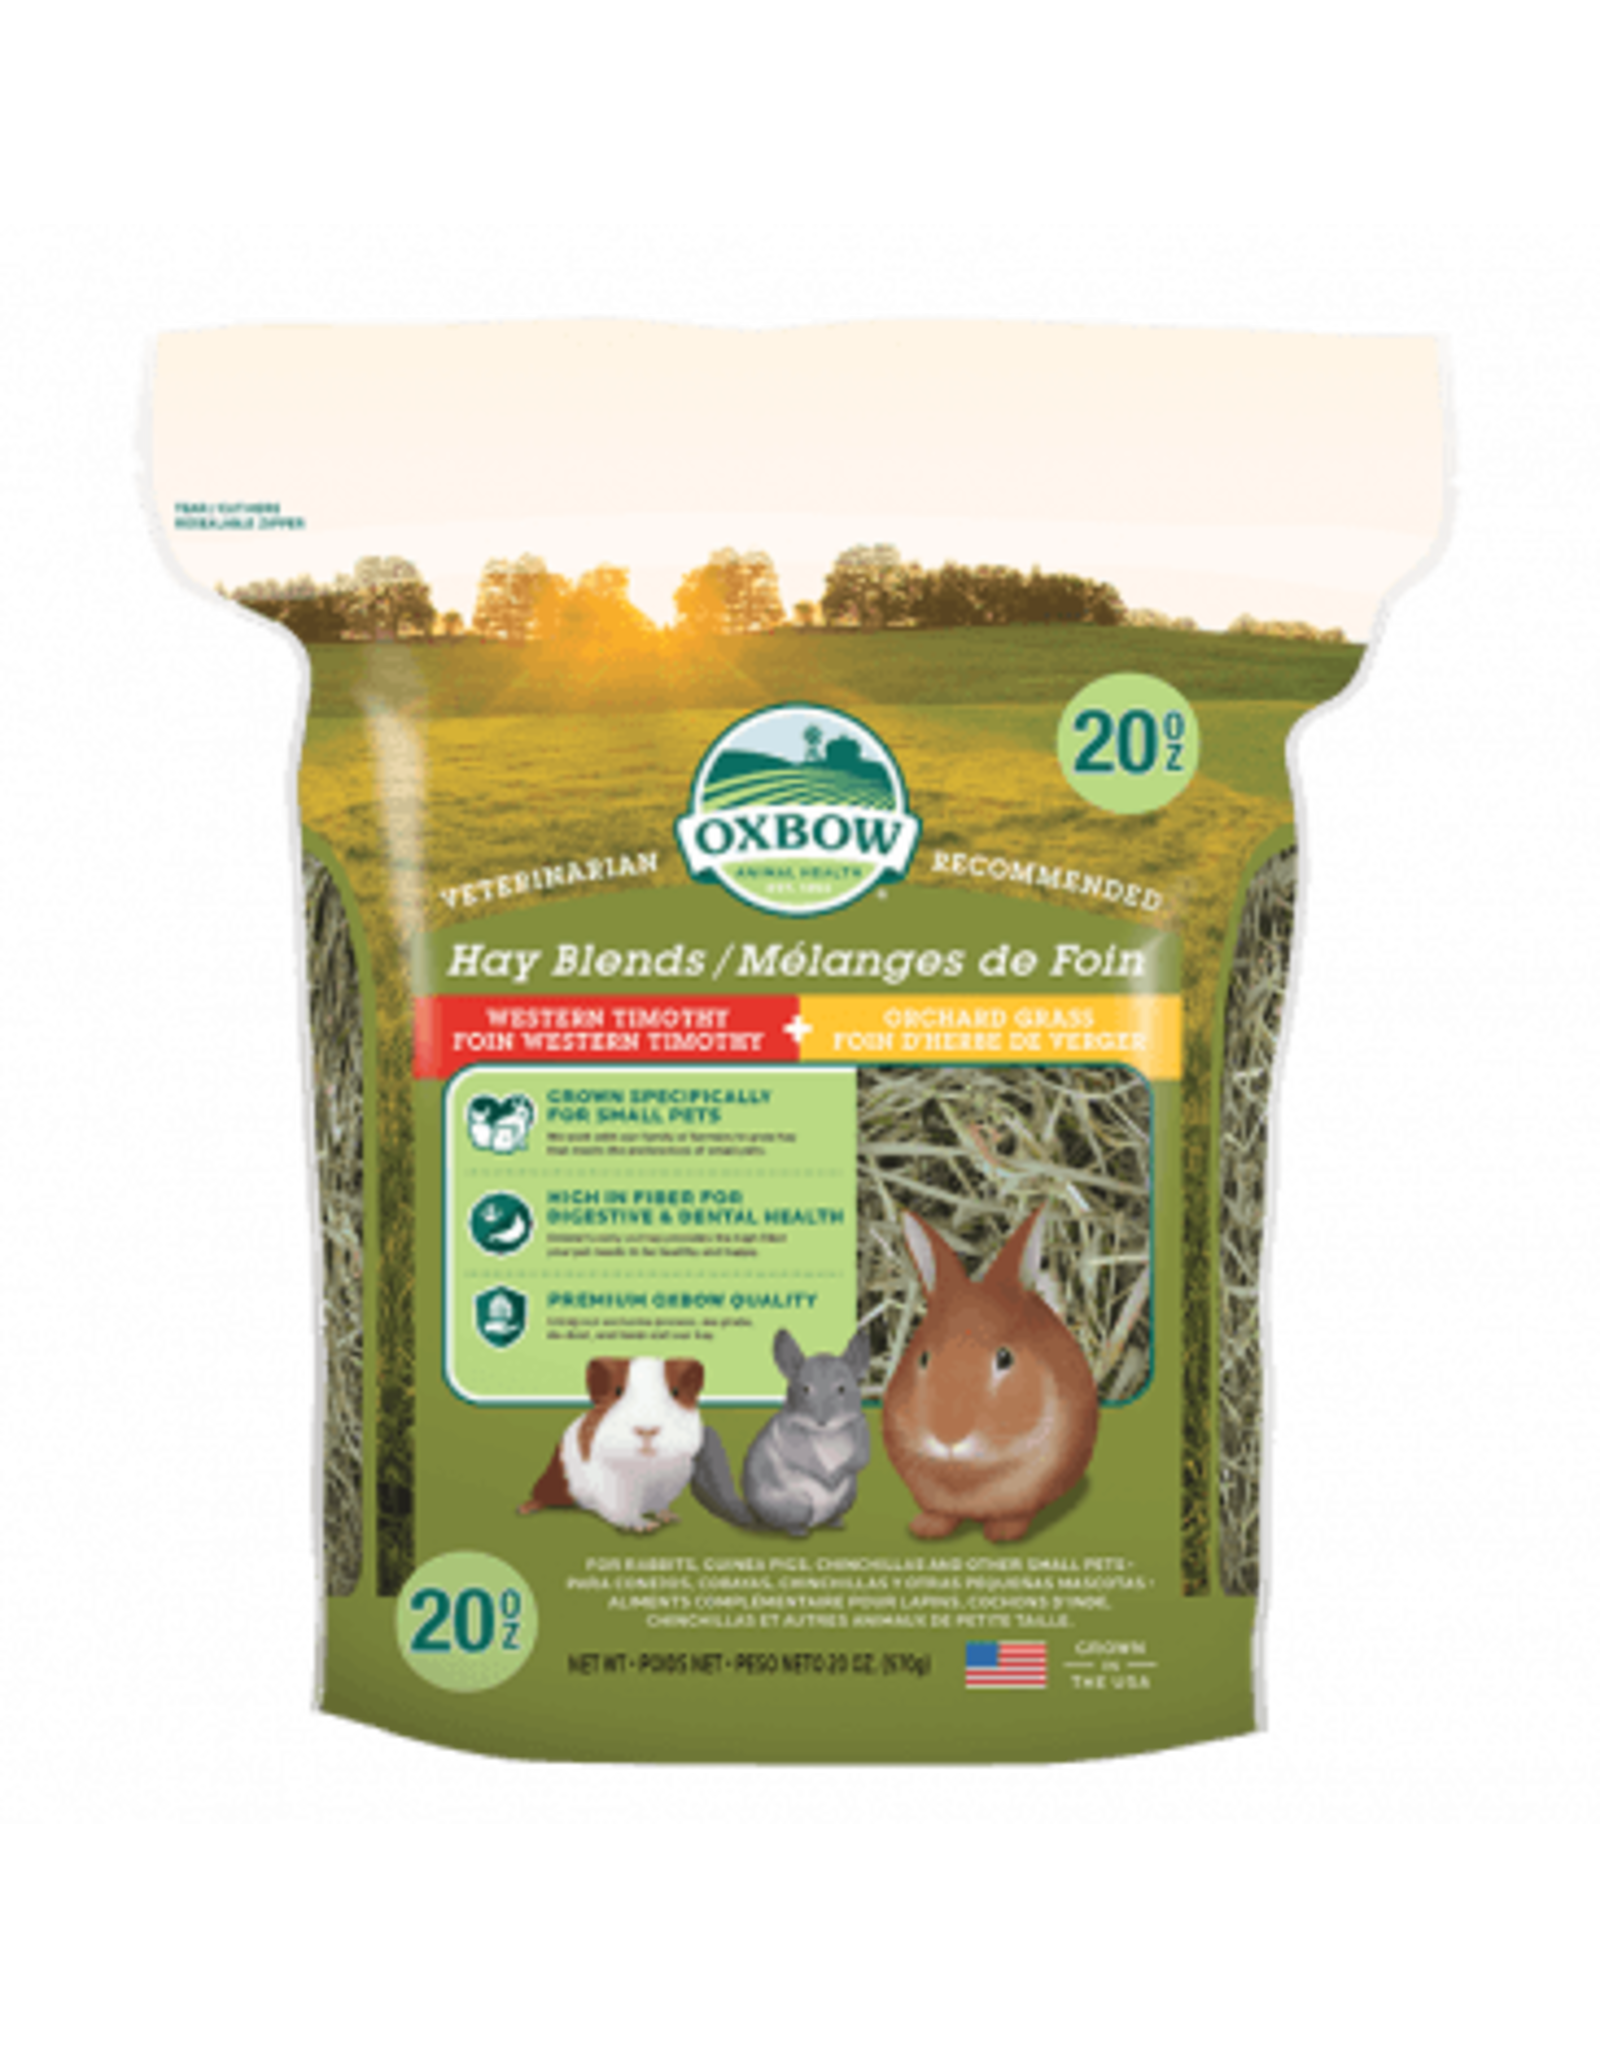 Oxbow OXBOW Hay Blends Timothy and Orchard